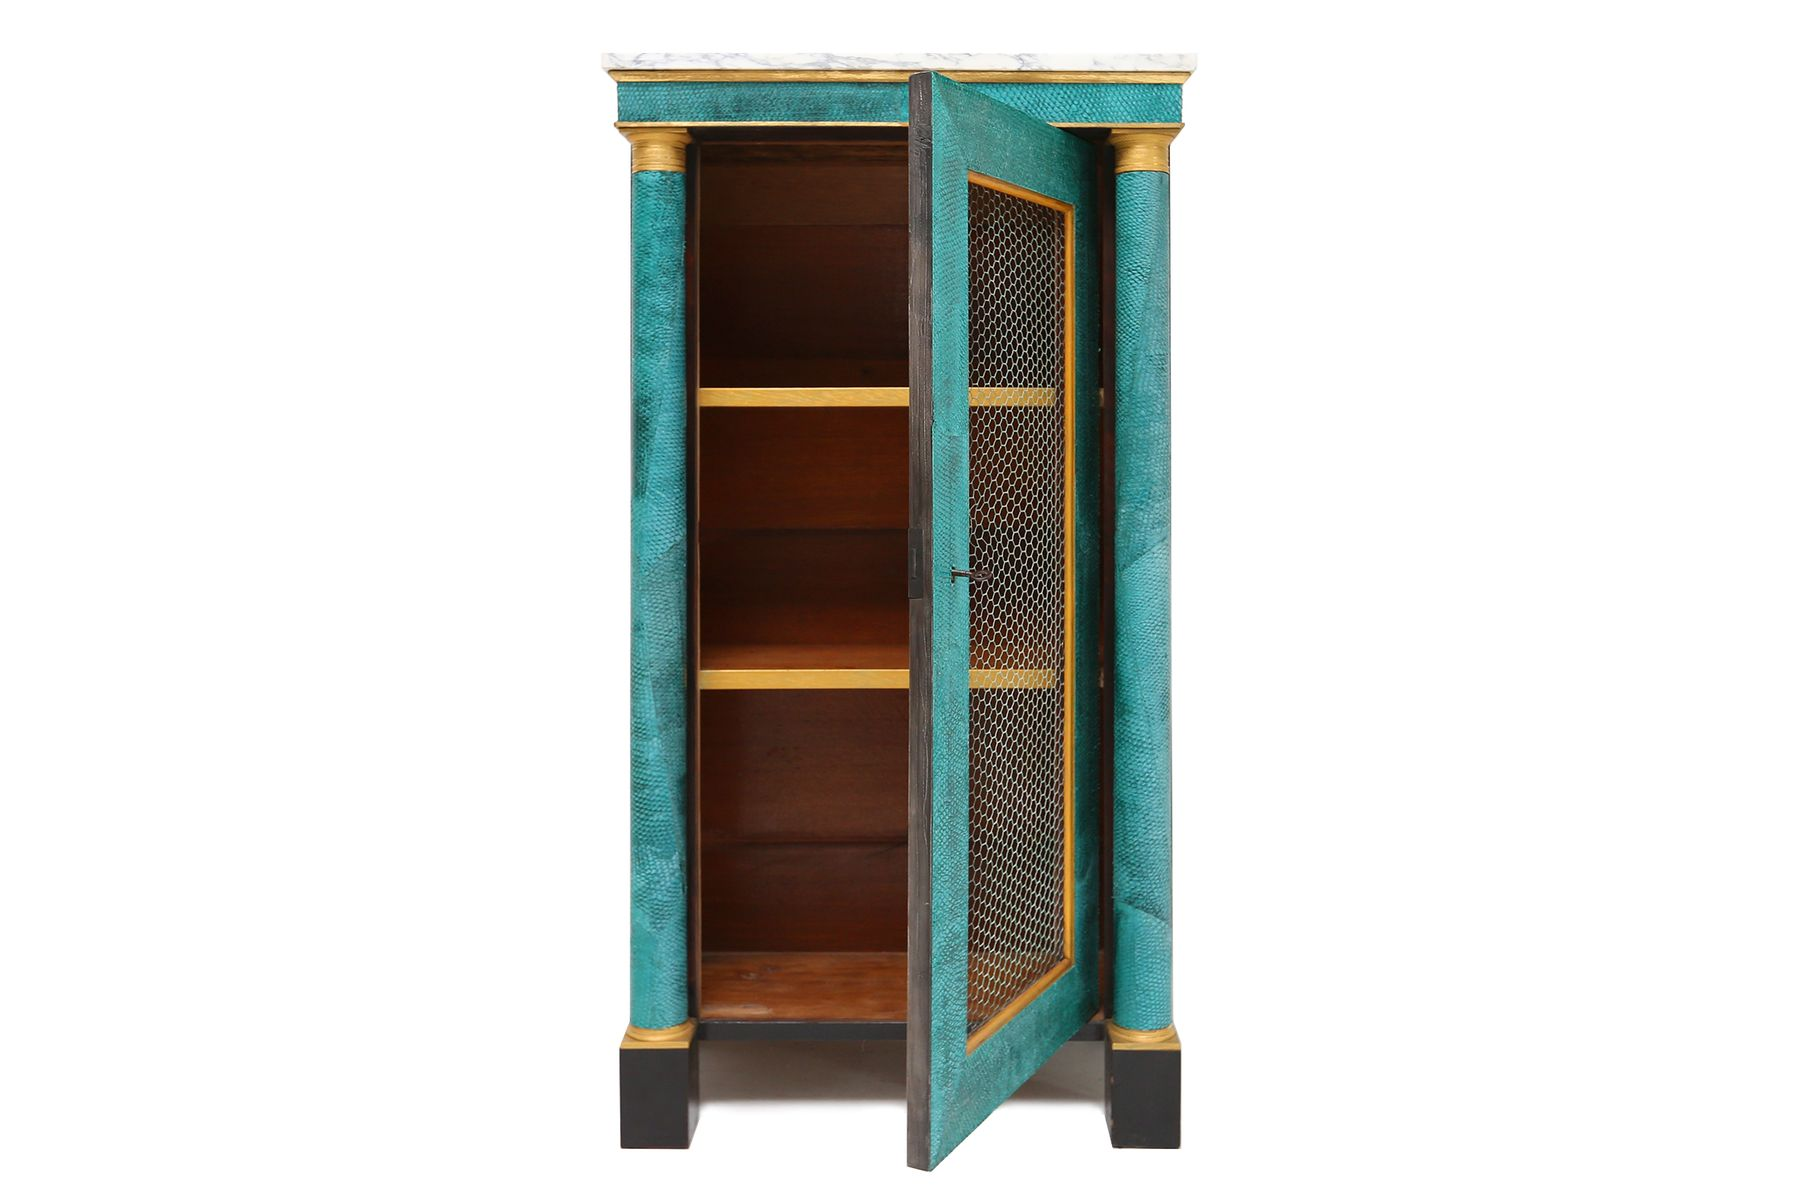 Decorative Neoclassical Cabinet for sale at Pamono